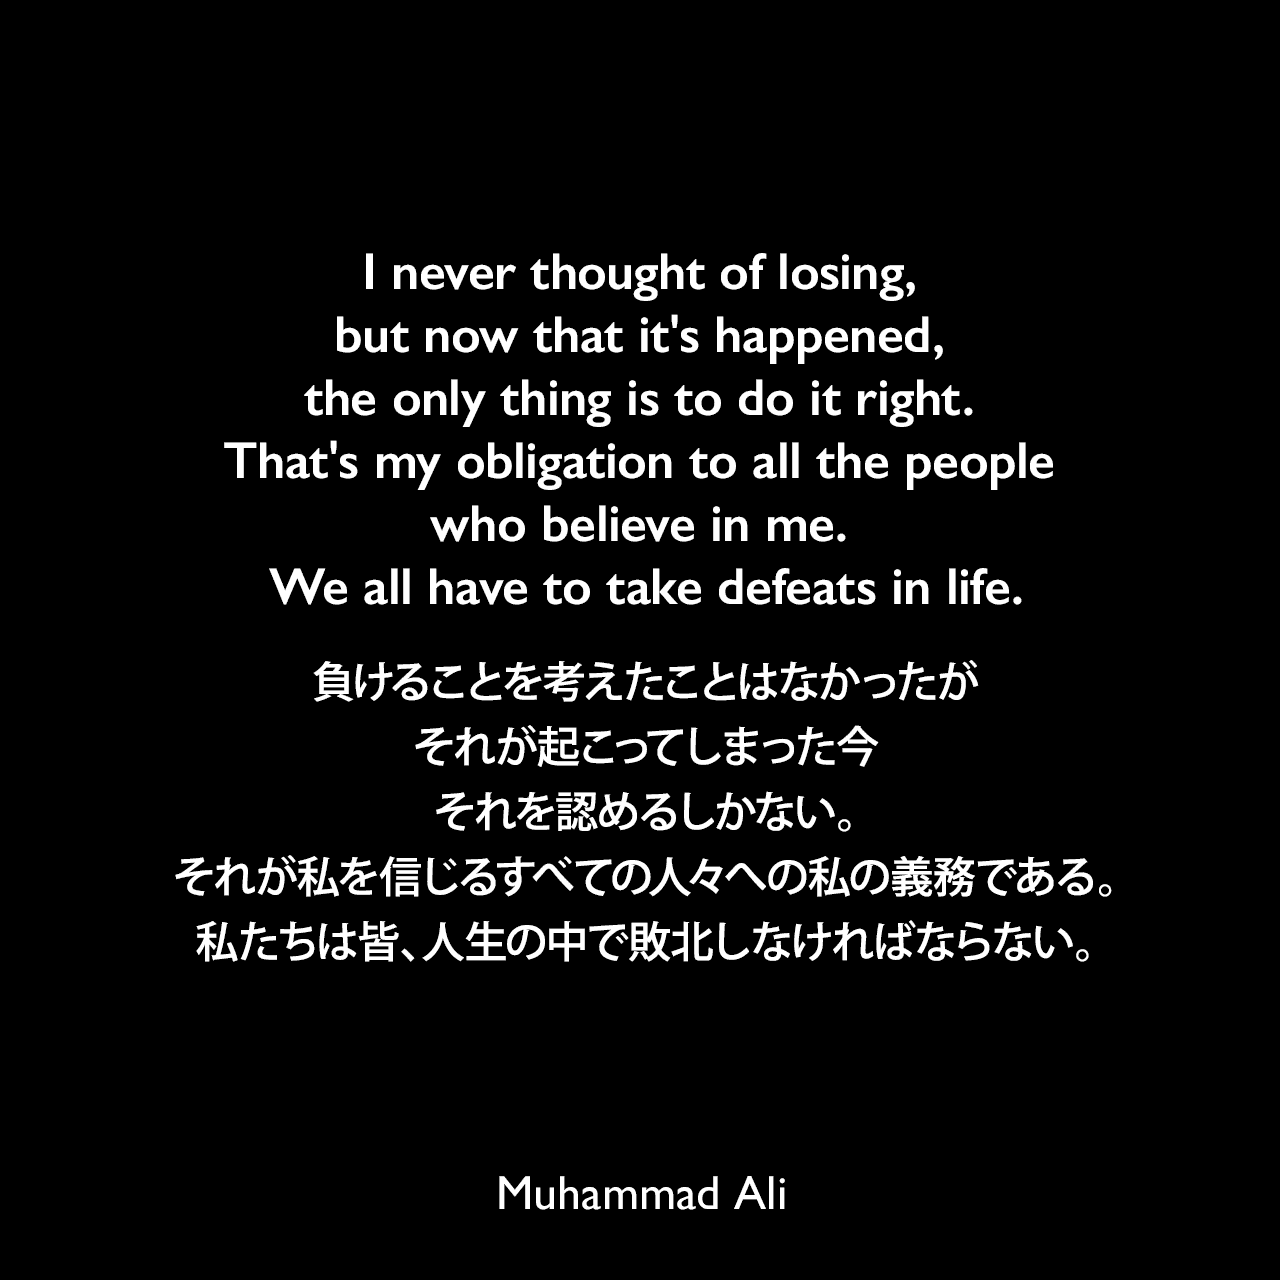 I never thought of losing, but now that it's happened, the only thing is to do it right. That's my obligation to all the people who believe in me. We all have to take defeats in life.負けることを考えたことはなかったが、それが起こってしまった今、それを認めるしかない。それが私を信じるすべての人々への私の義務である。私たちは皆、人生の中で敗北しなければならない。- 1973年のジョージ・フォアマンとの試合前会見でのコメントよりMuhammad Ali